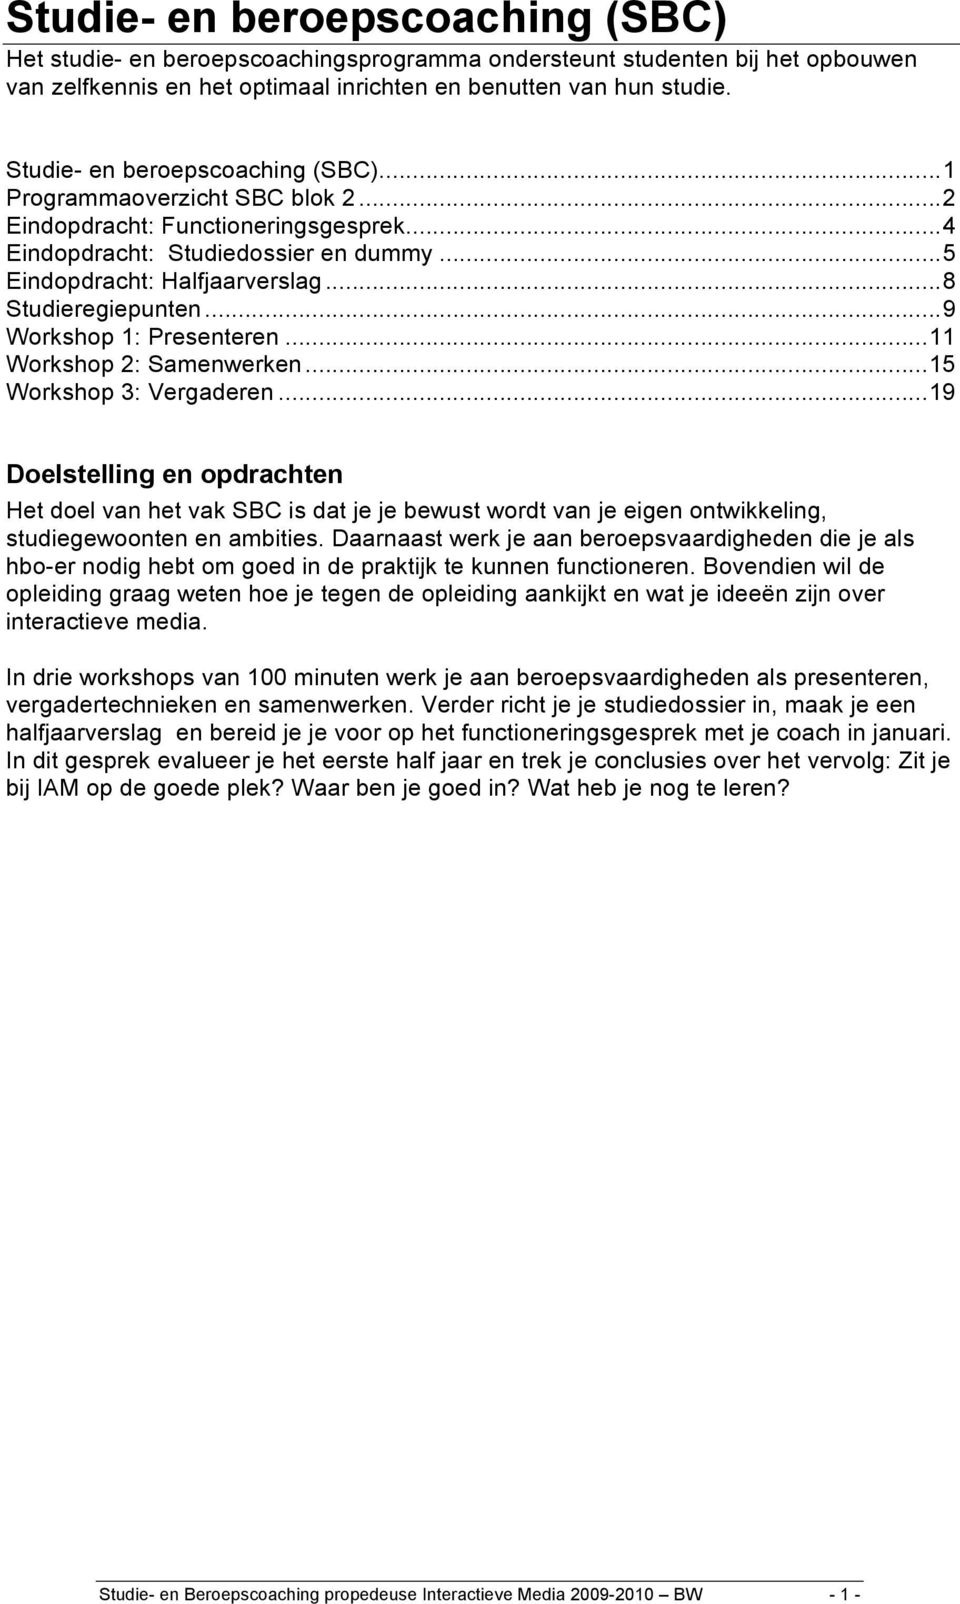 ..8 Studieregiepunten...9 Workshop 1: Presenteren...11 Workshop 2: Samenwerken...15 Workshop 3: Vergaderen.